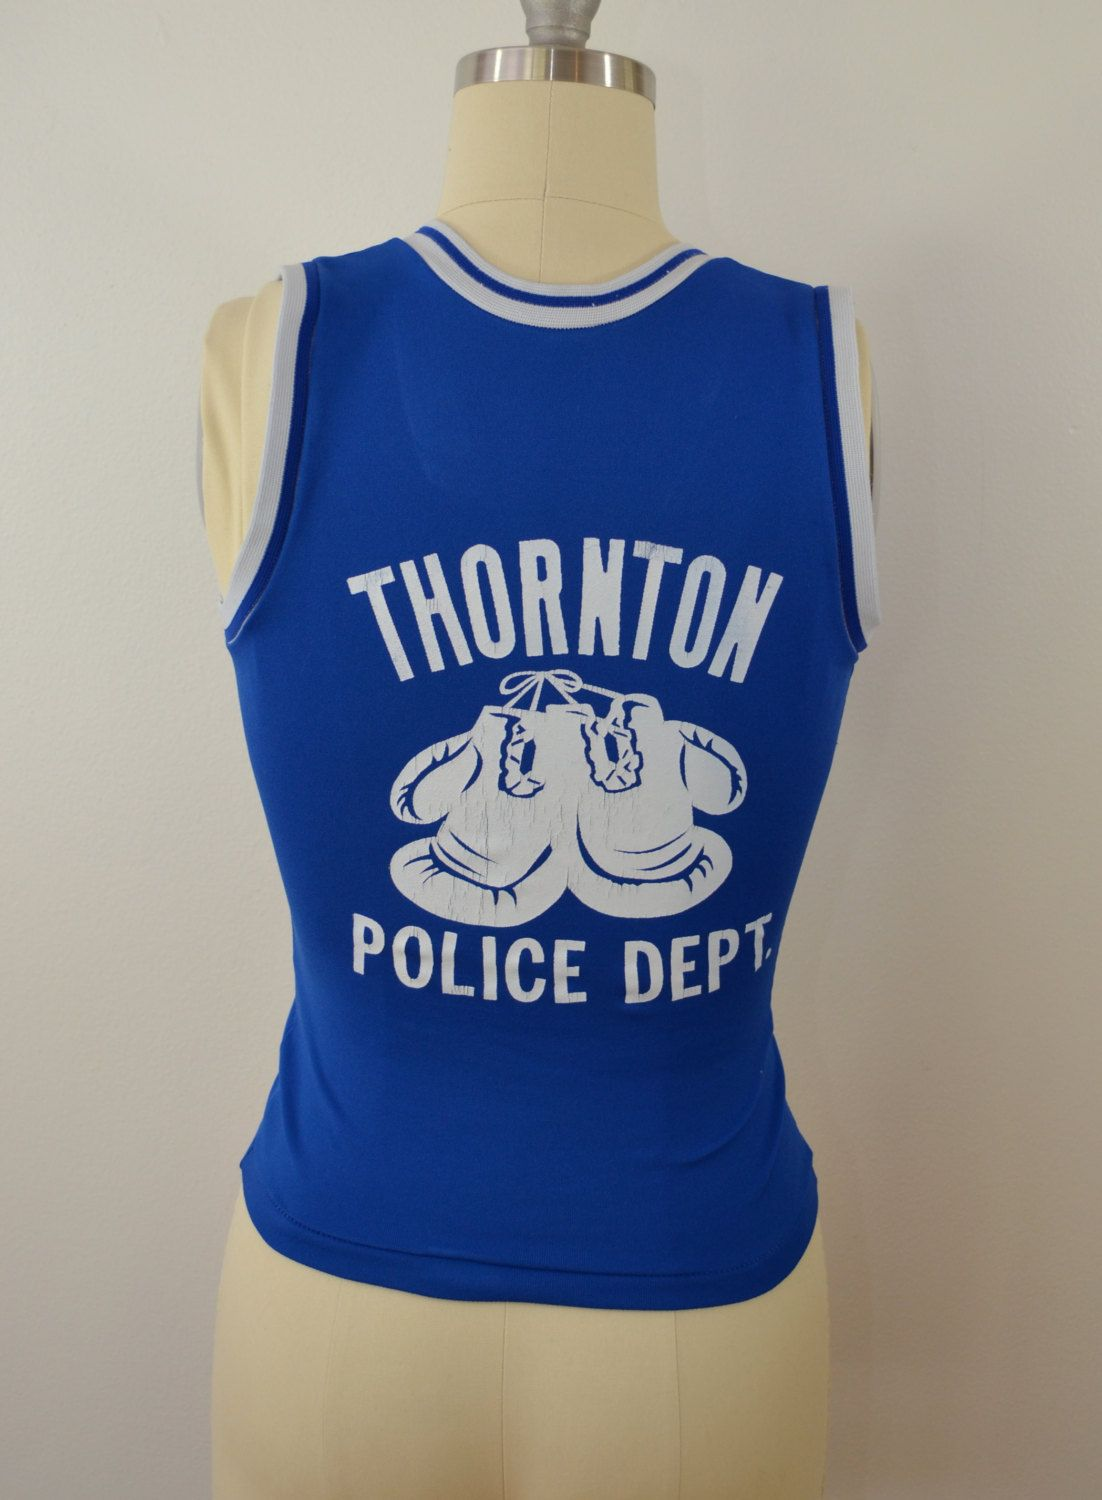 3aed5ef605739 Vintage THORNTON POLICE Department BOXING tank top Southern Athletic 1950 s  small by ilovevintagestuff on Etsy